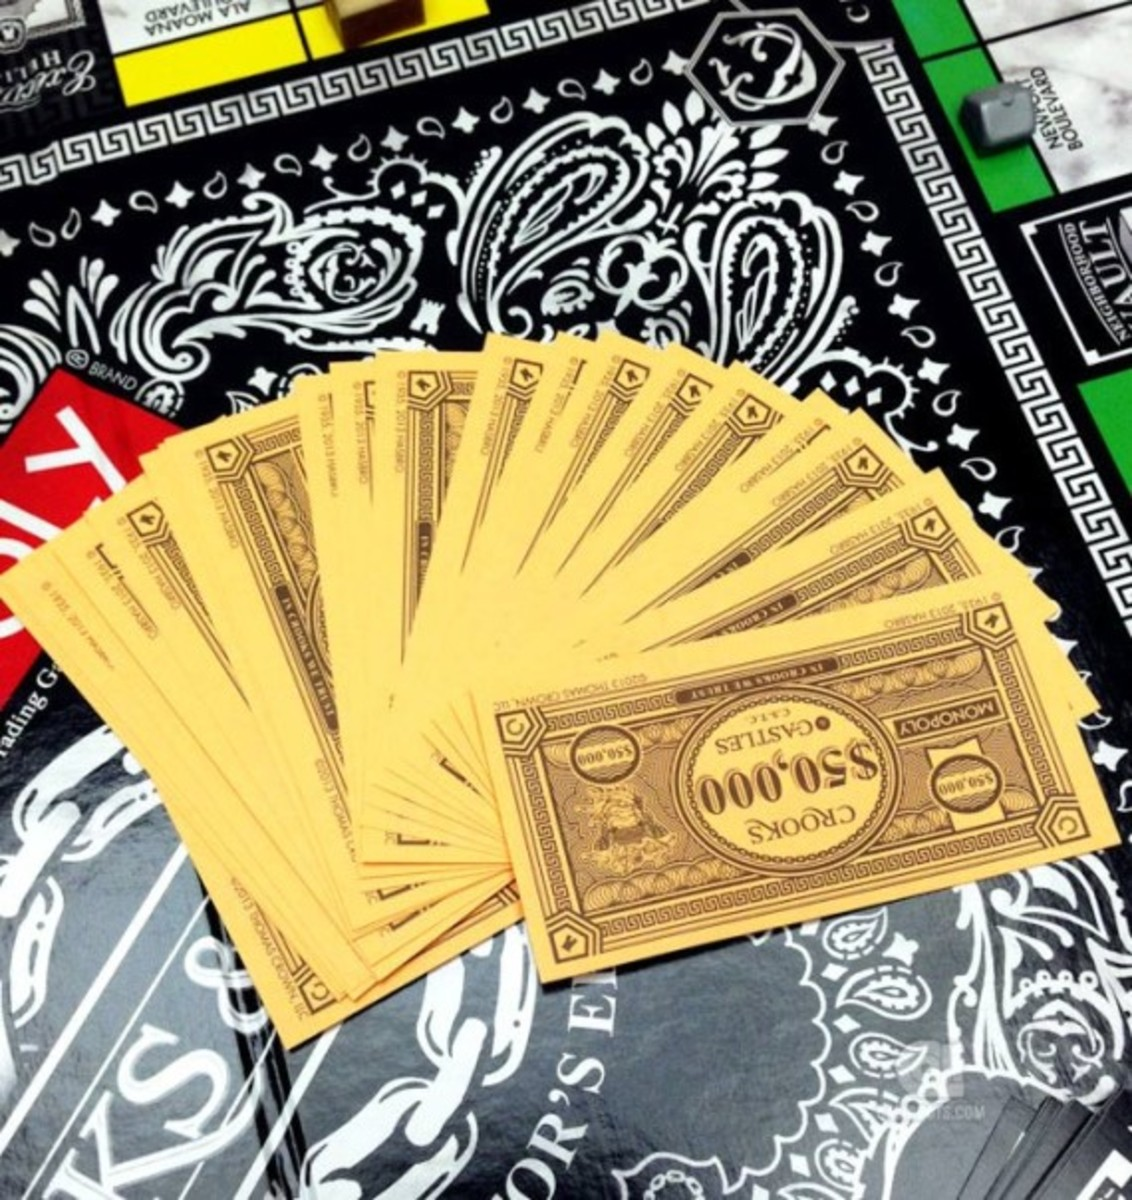 hasbro-crooks-and-castles-monopoly-05